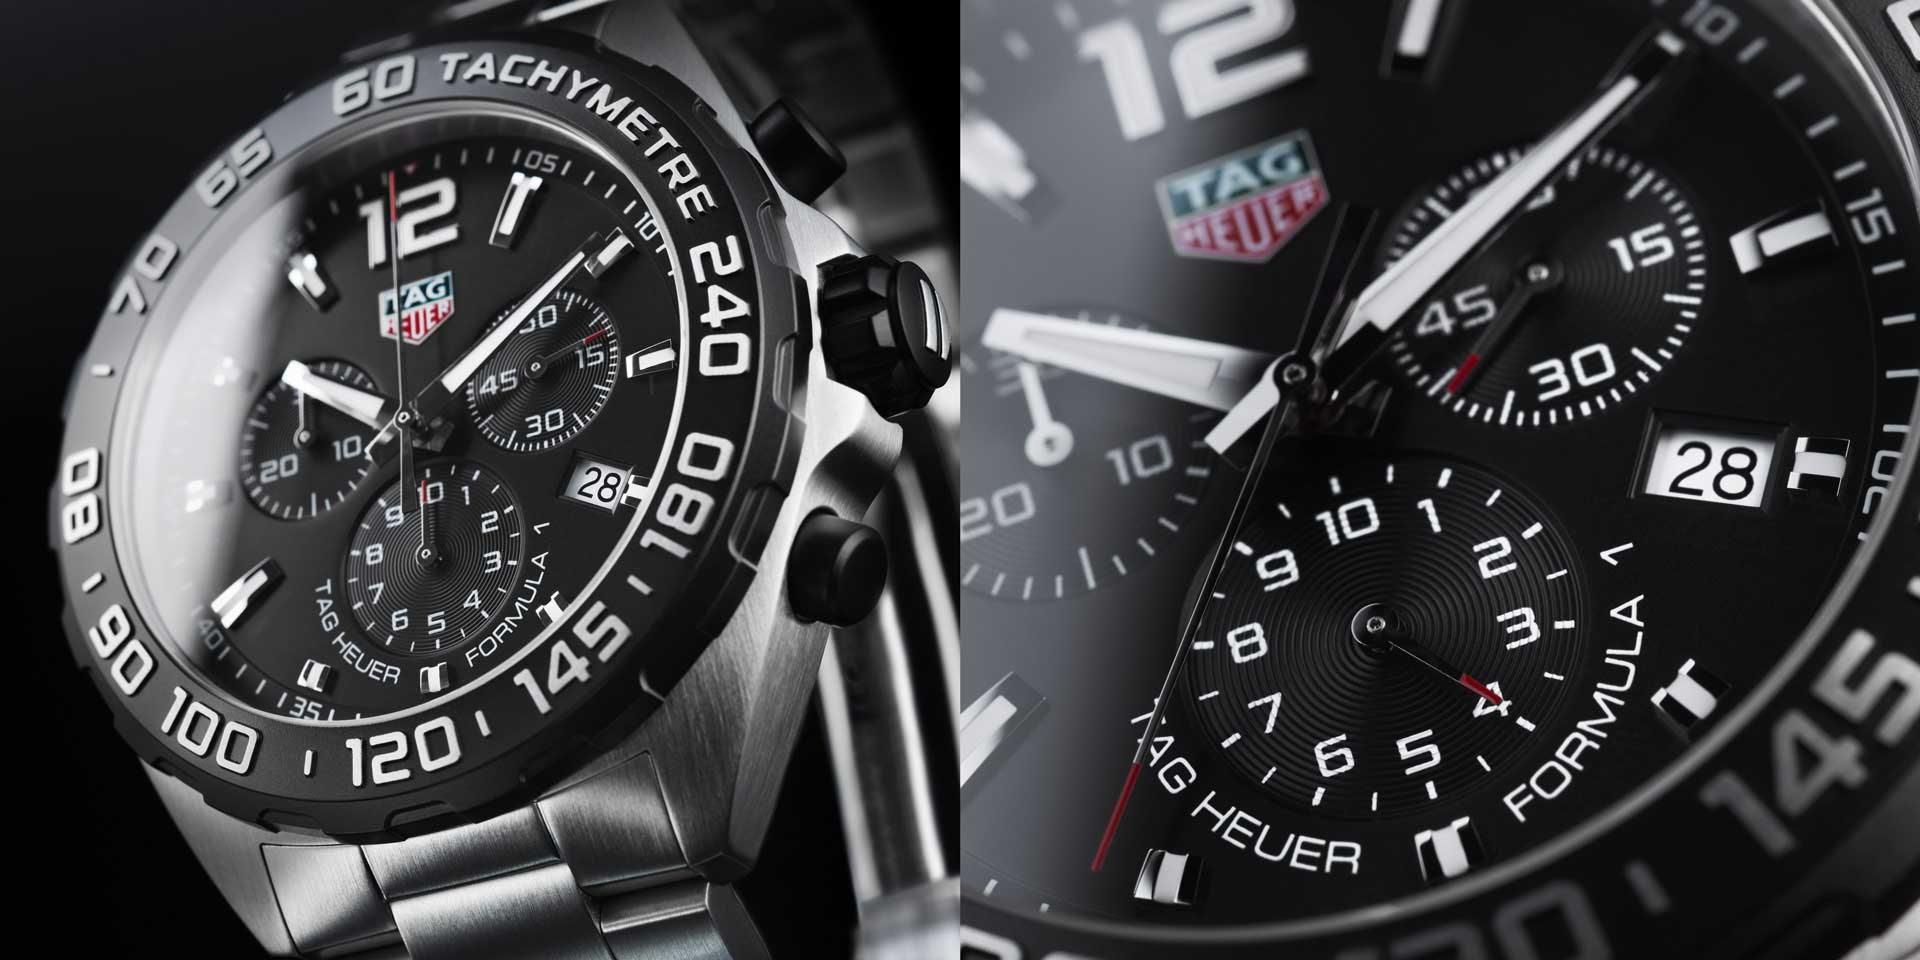 FORMULA 1 Chronograph - feature